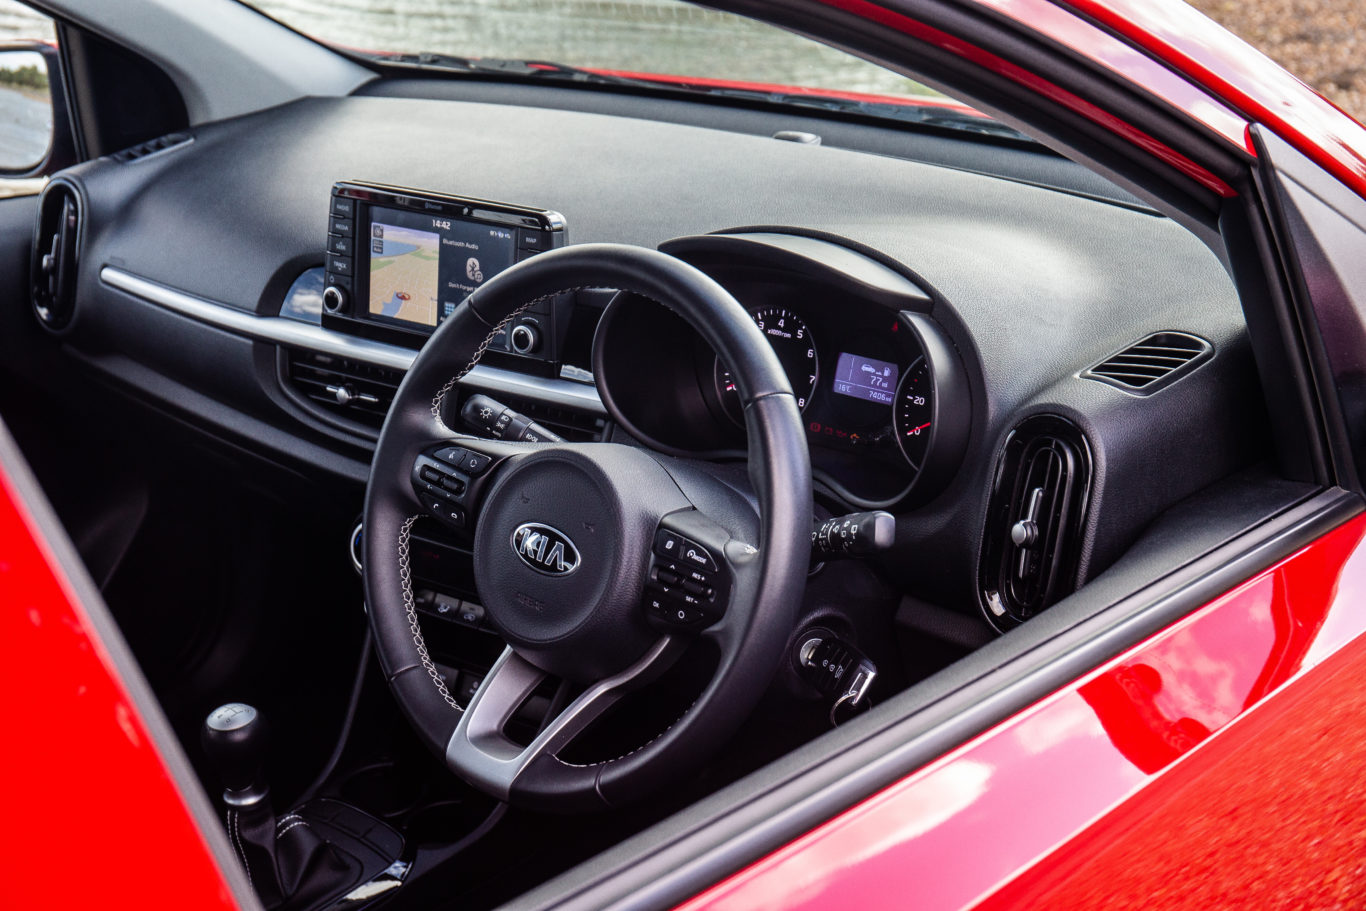 The interior of the Picanto is solidly made